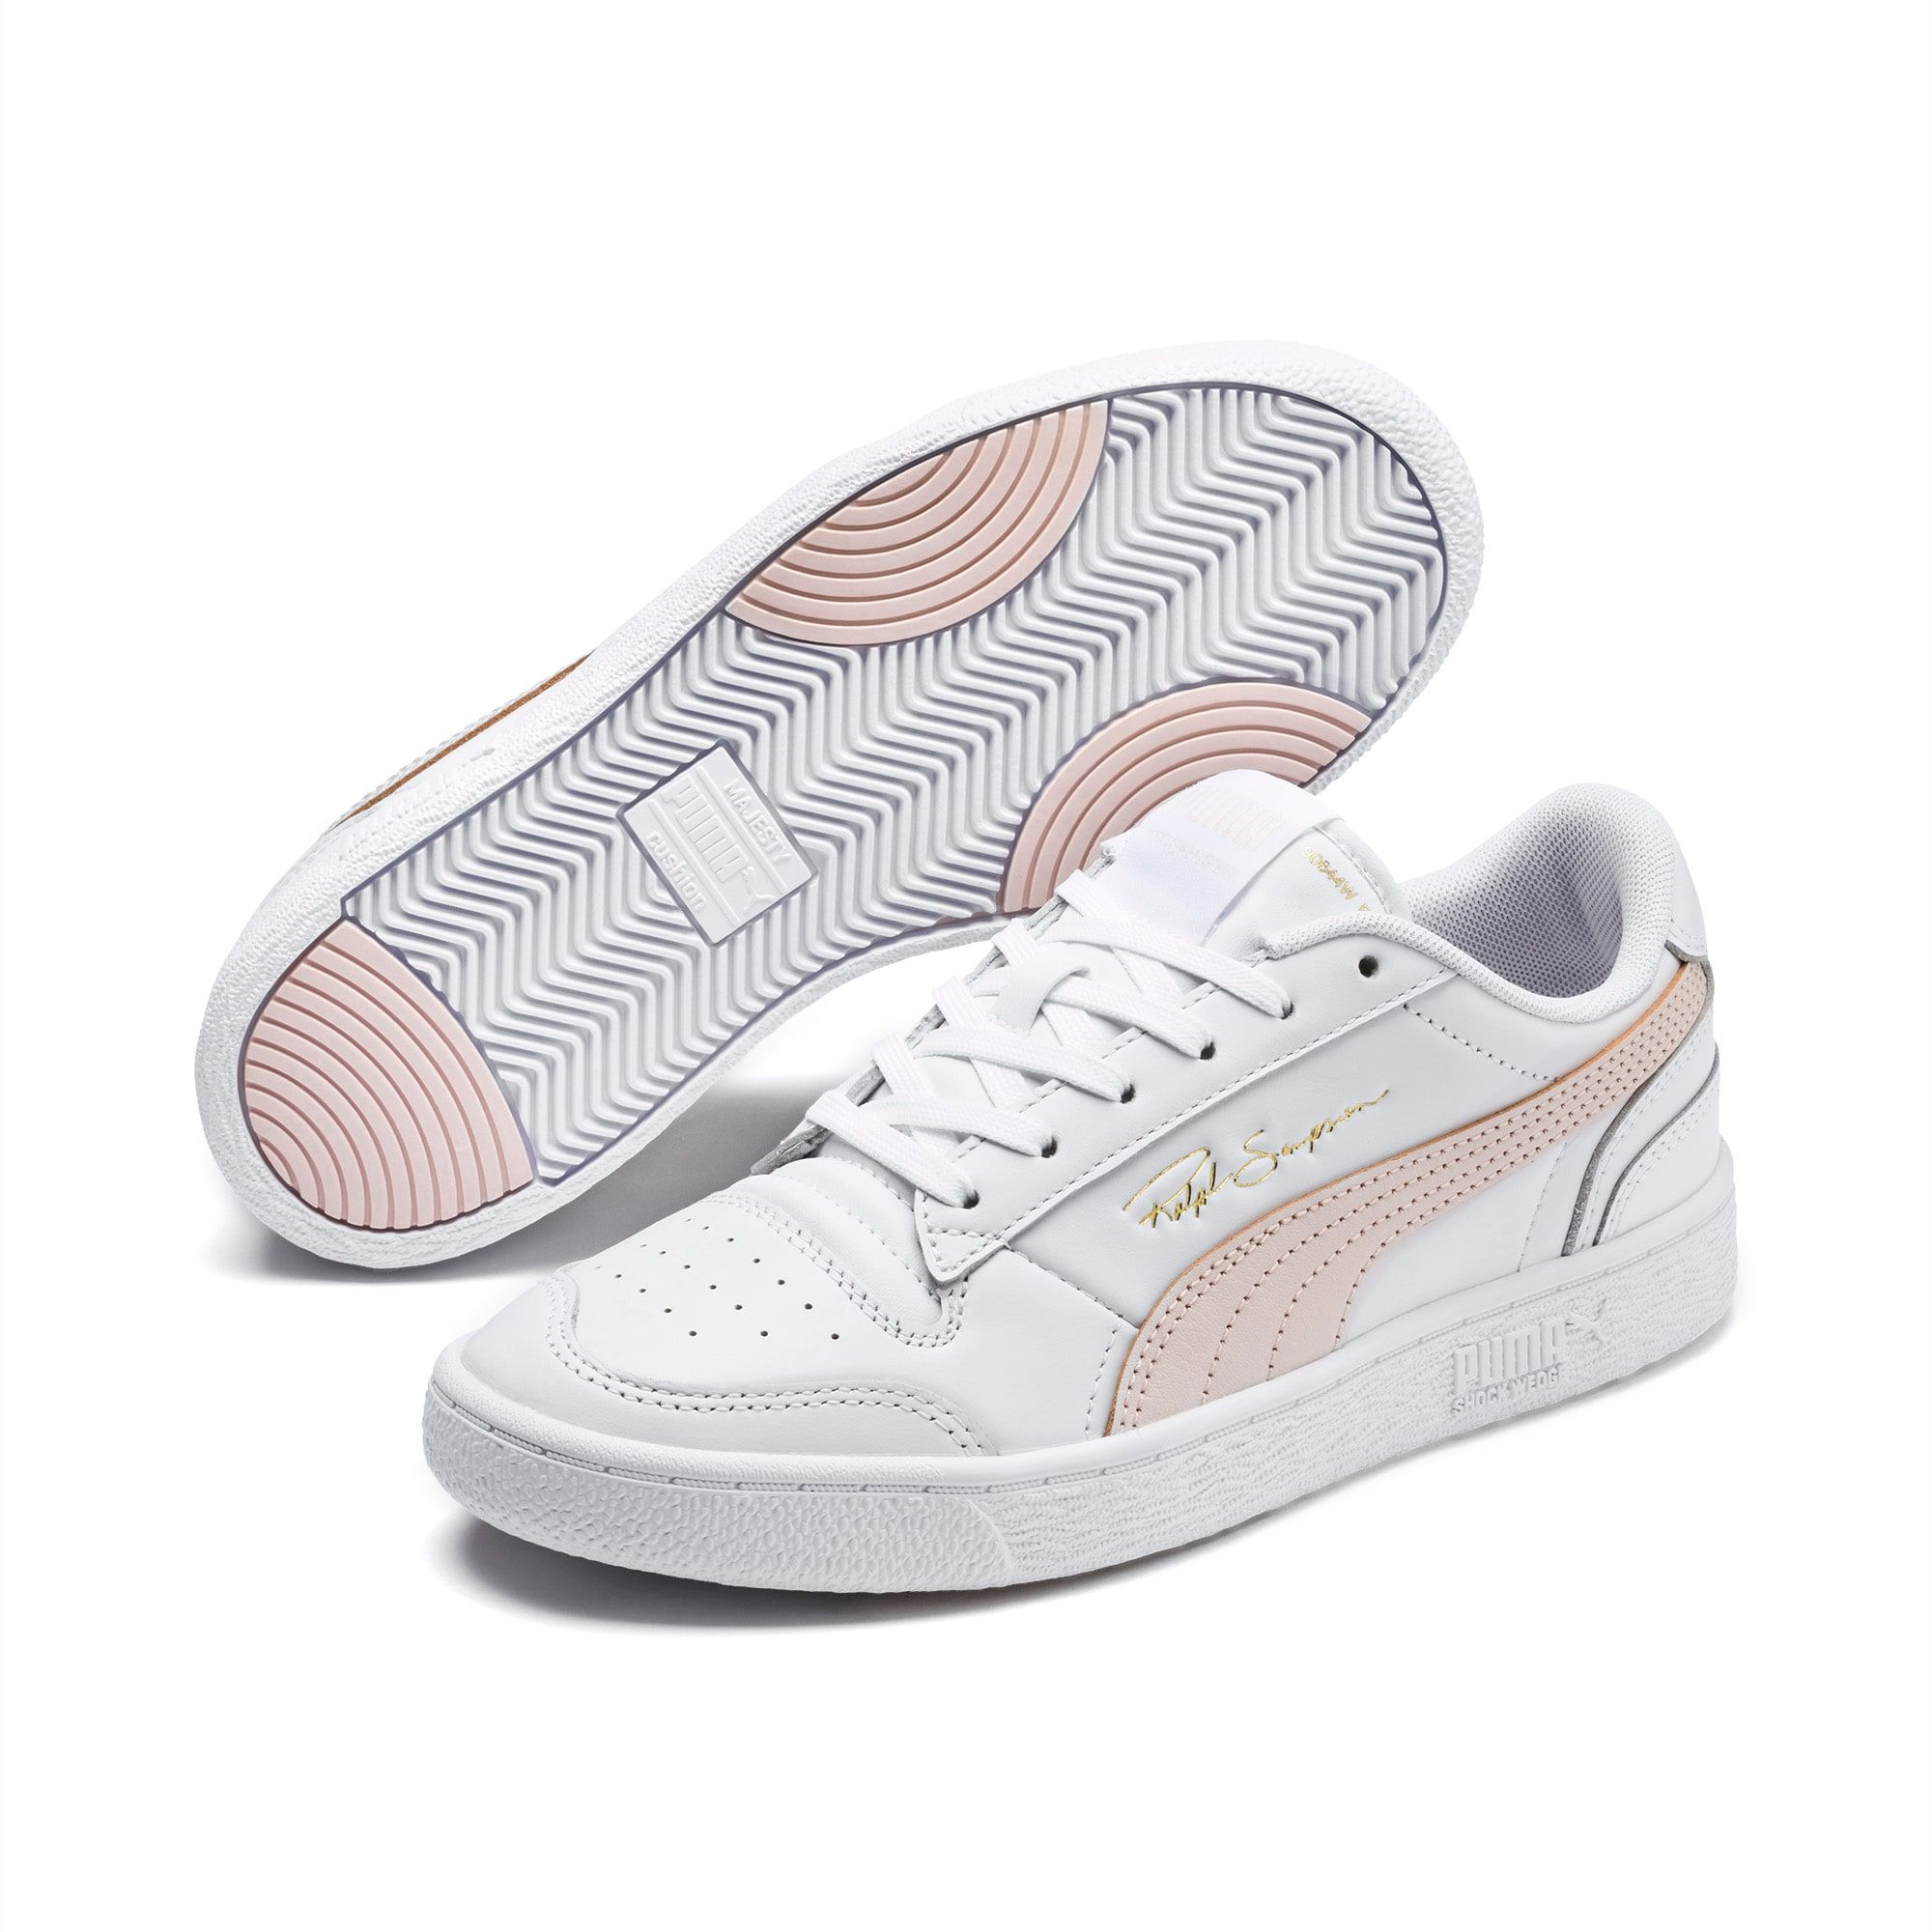 Men's PUMA Ralph Sampson Lo Trainers, White/Rosewater/White, size 5.5, Shoes